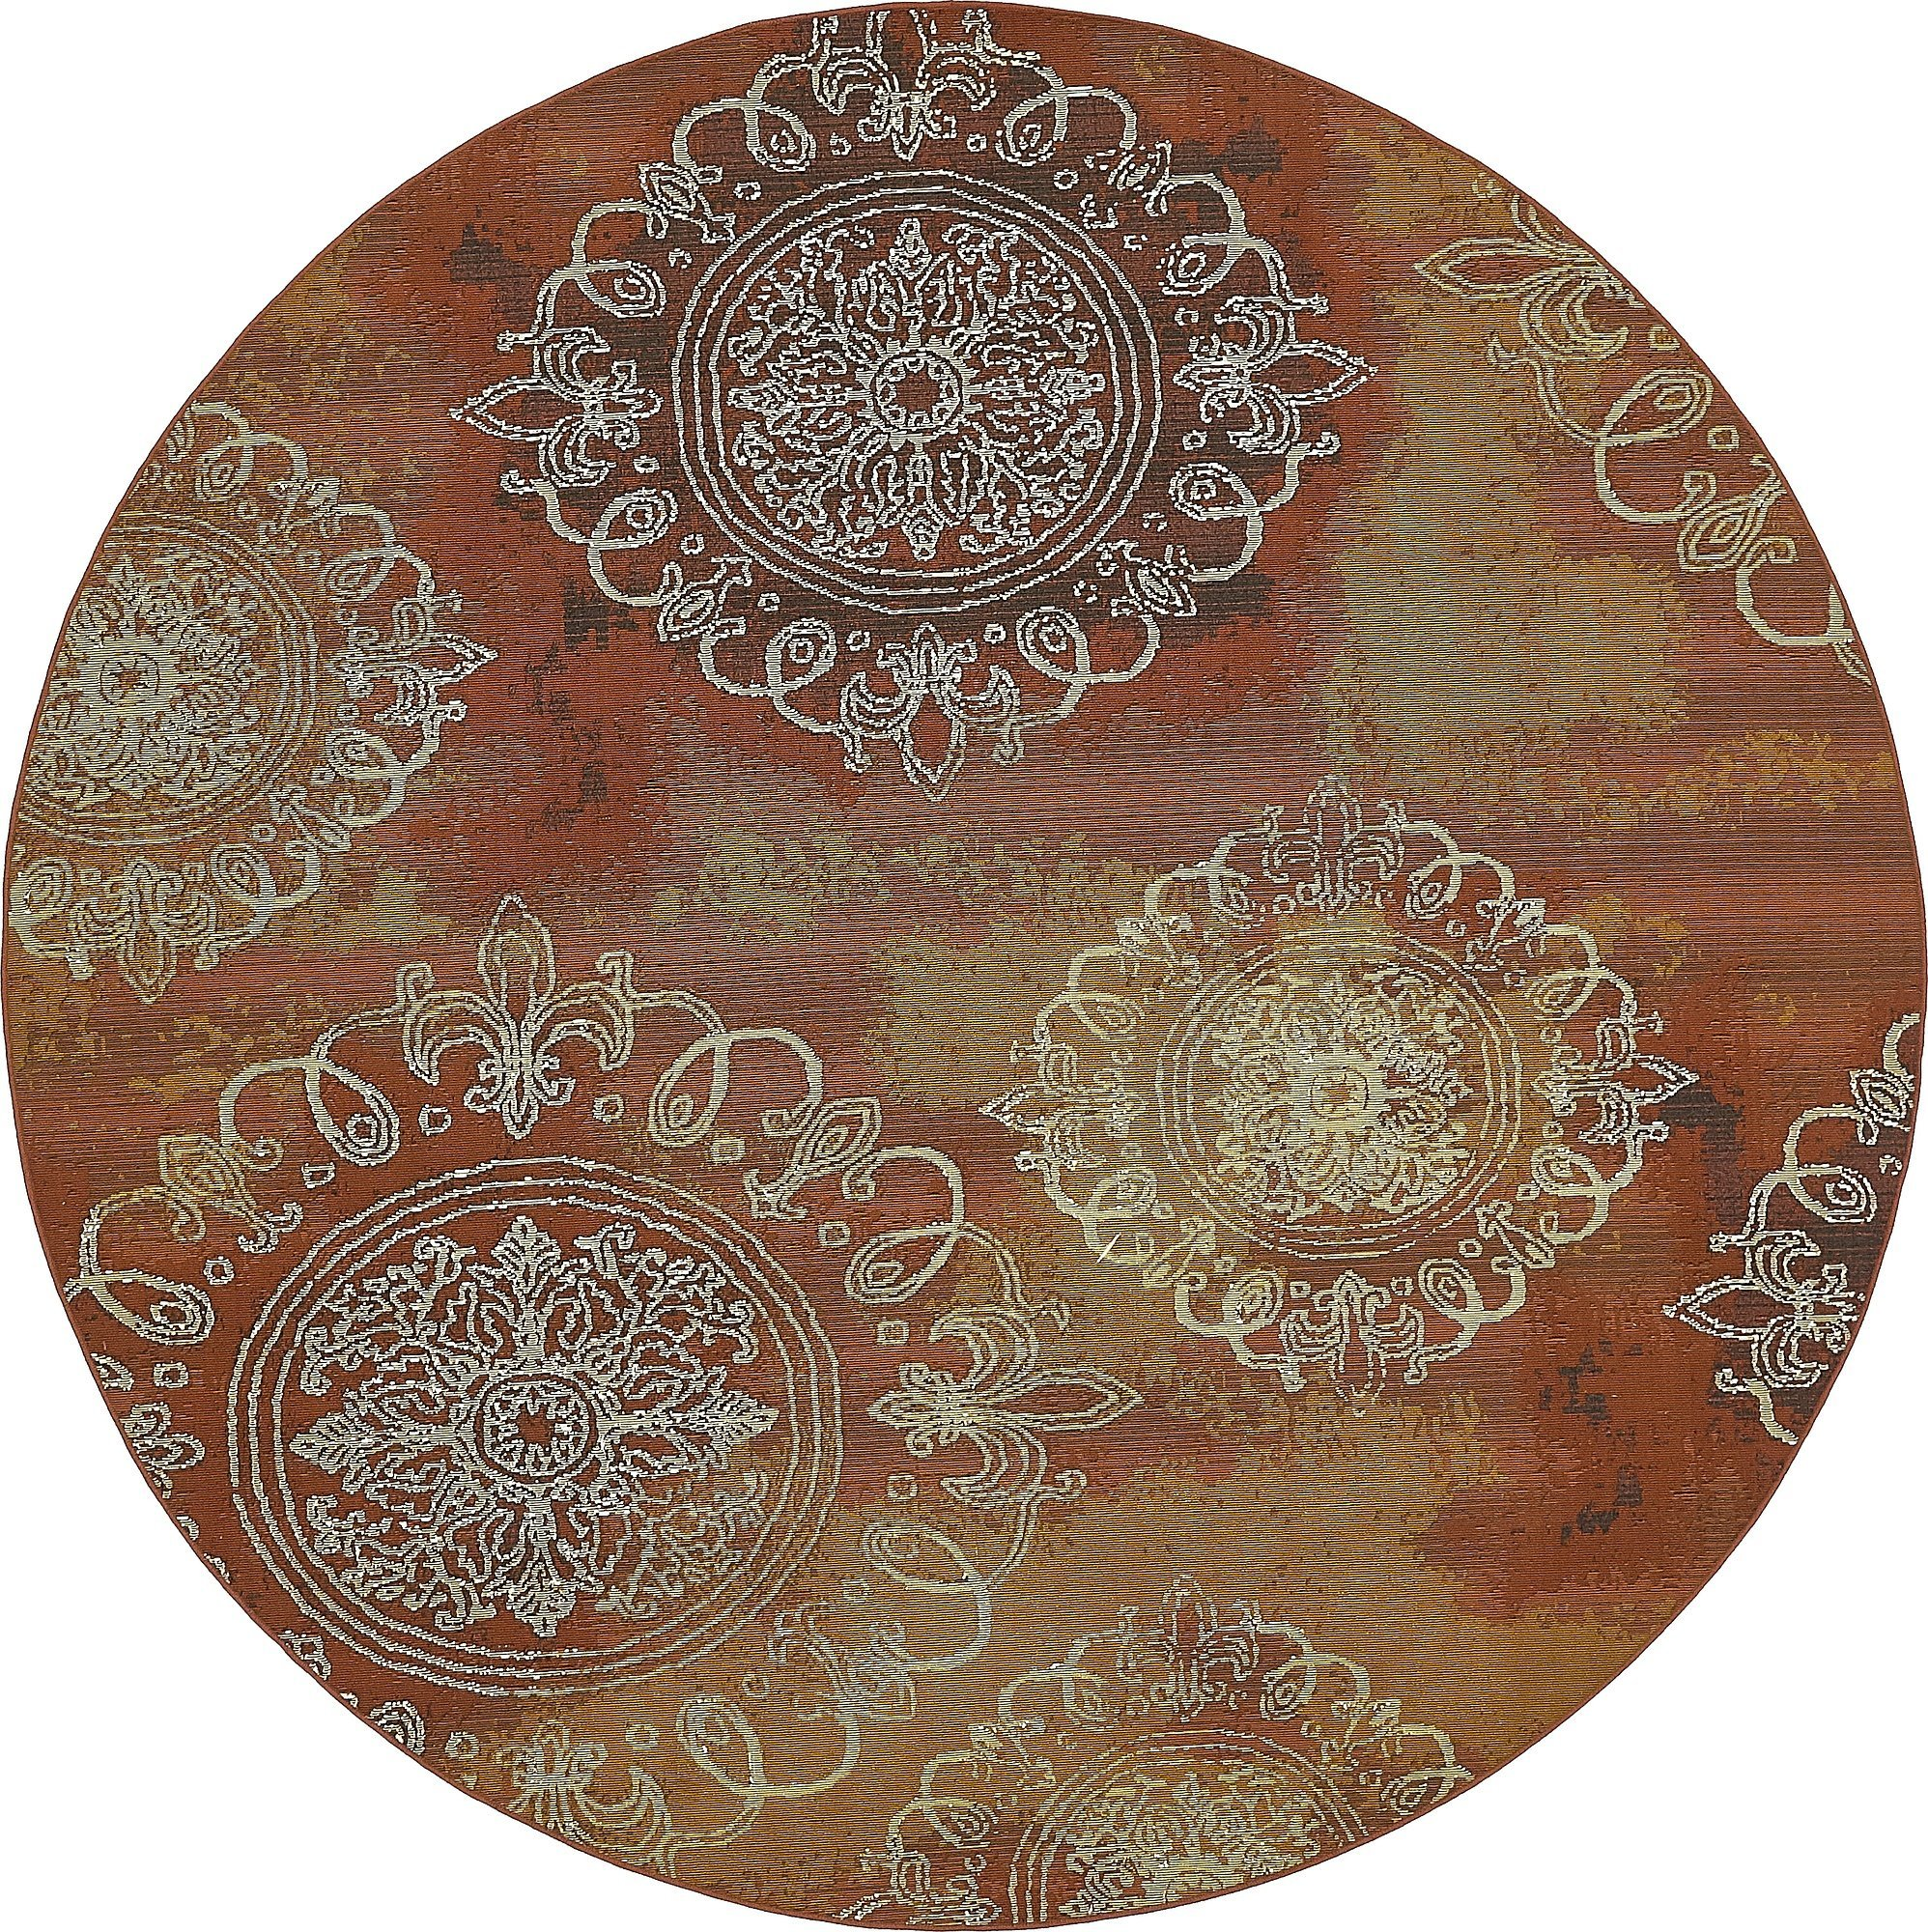 Unique Loom Eden Outdoor Collection Rust Red 8 ft Round Area Rug (8' x 8')